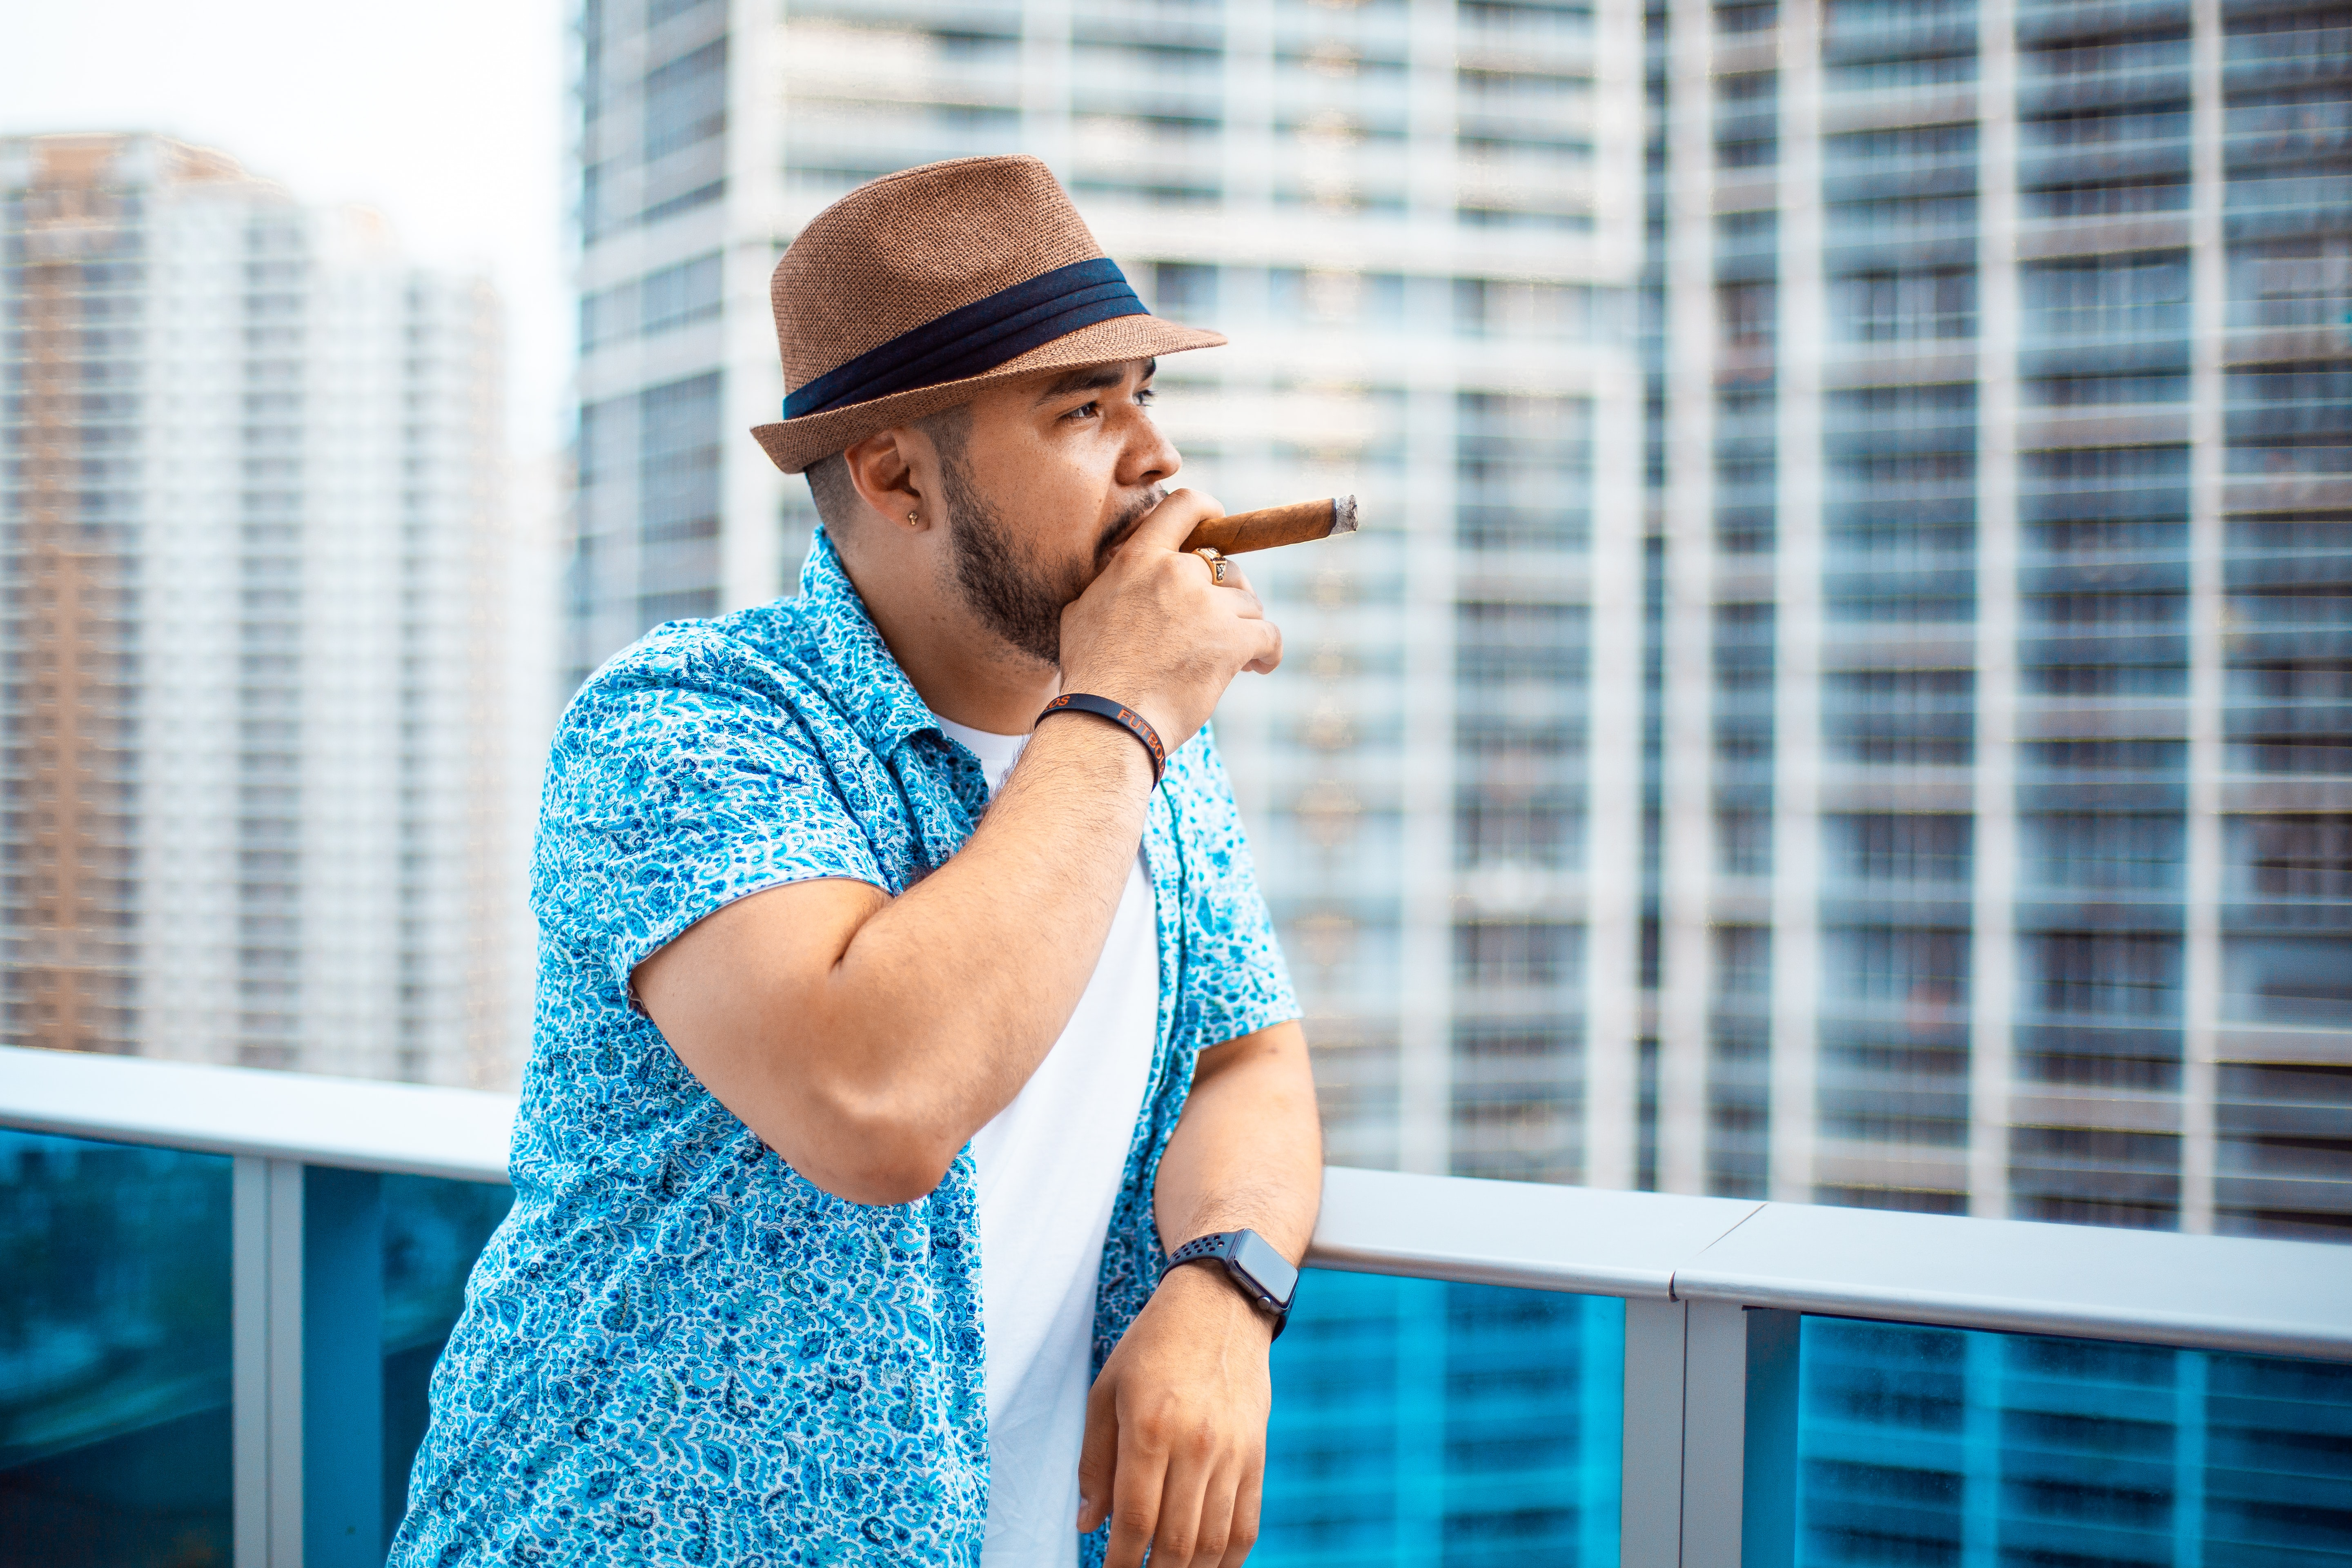 person leaning against white metal railing while smoking cigar